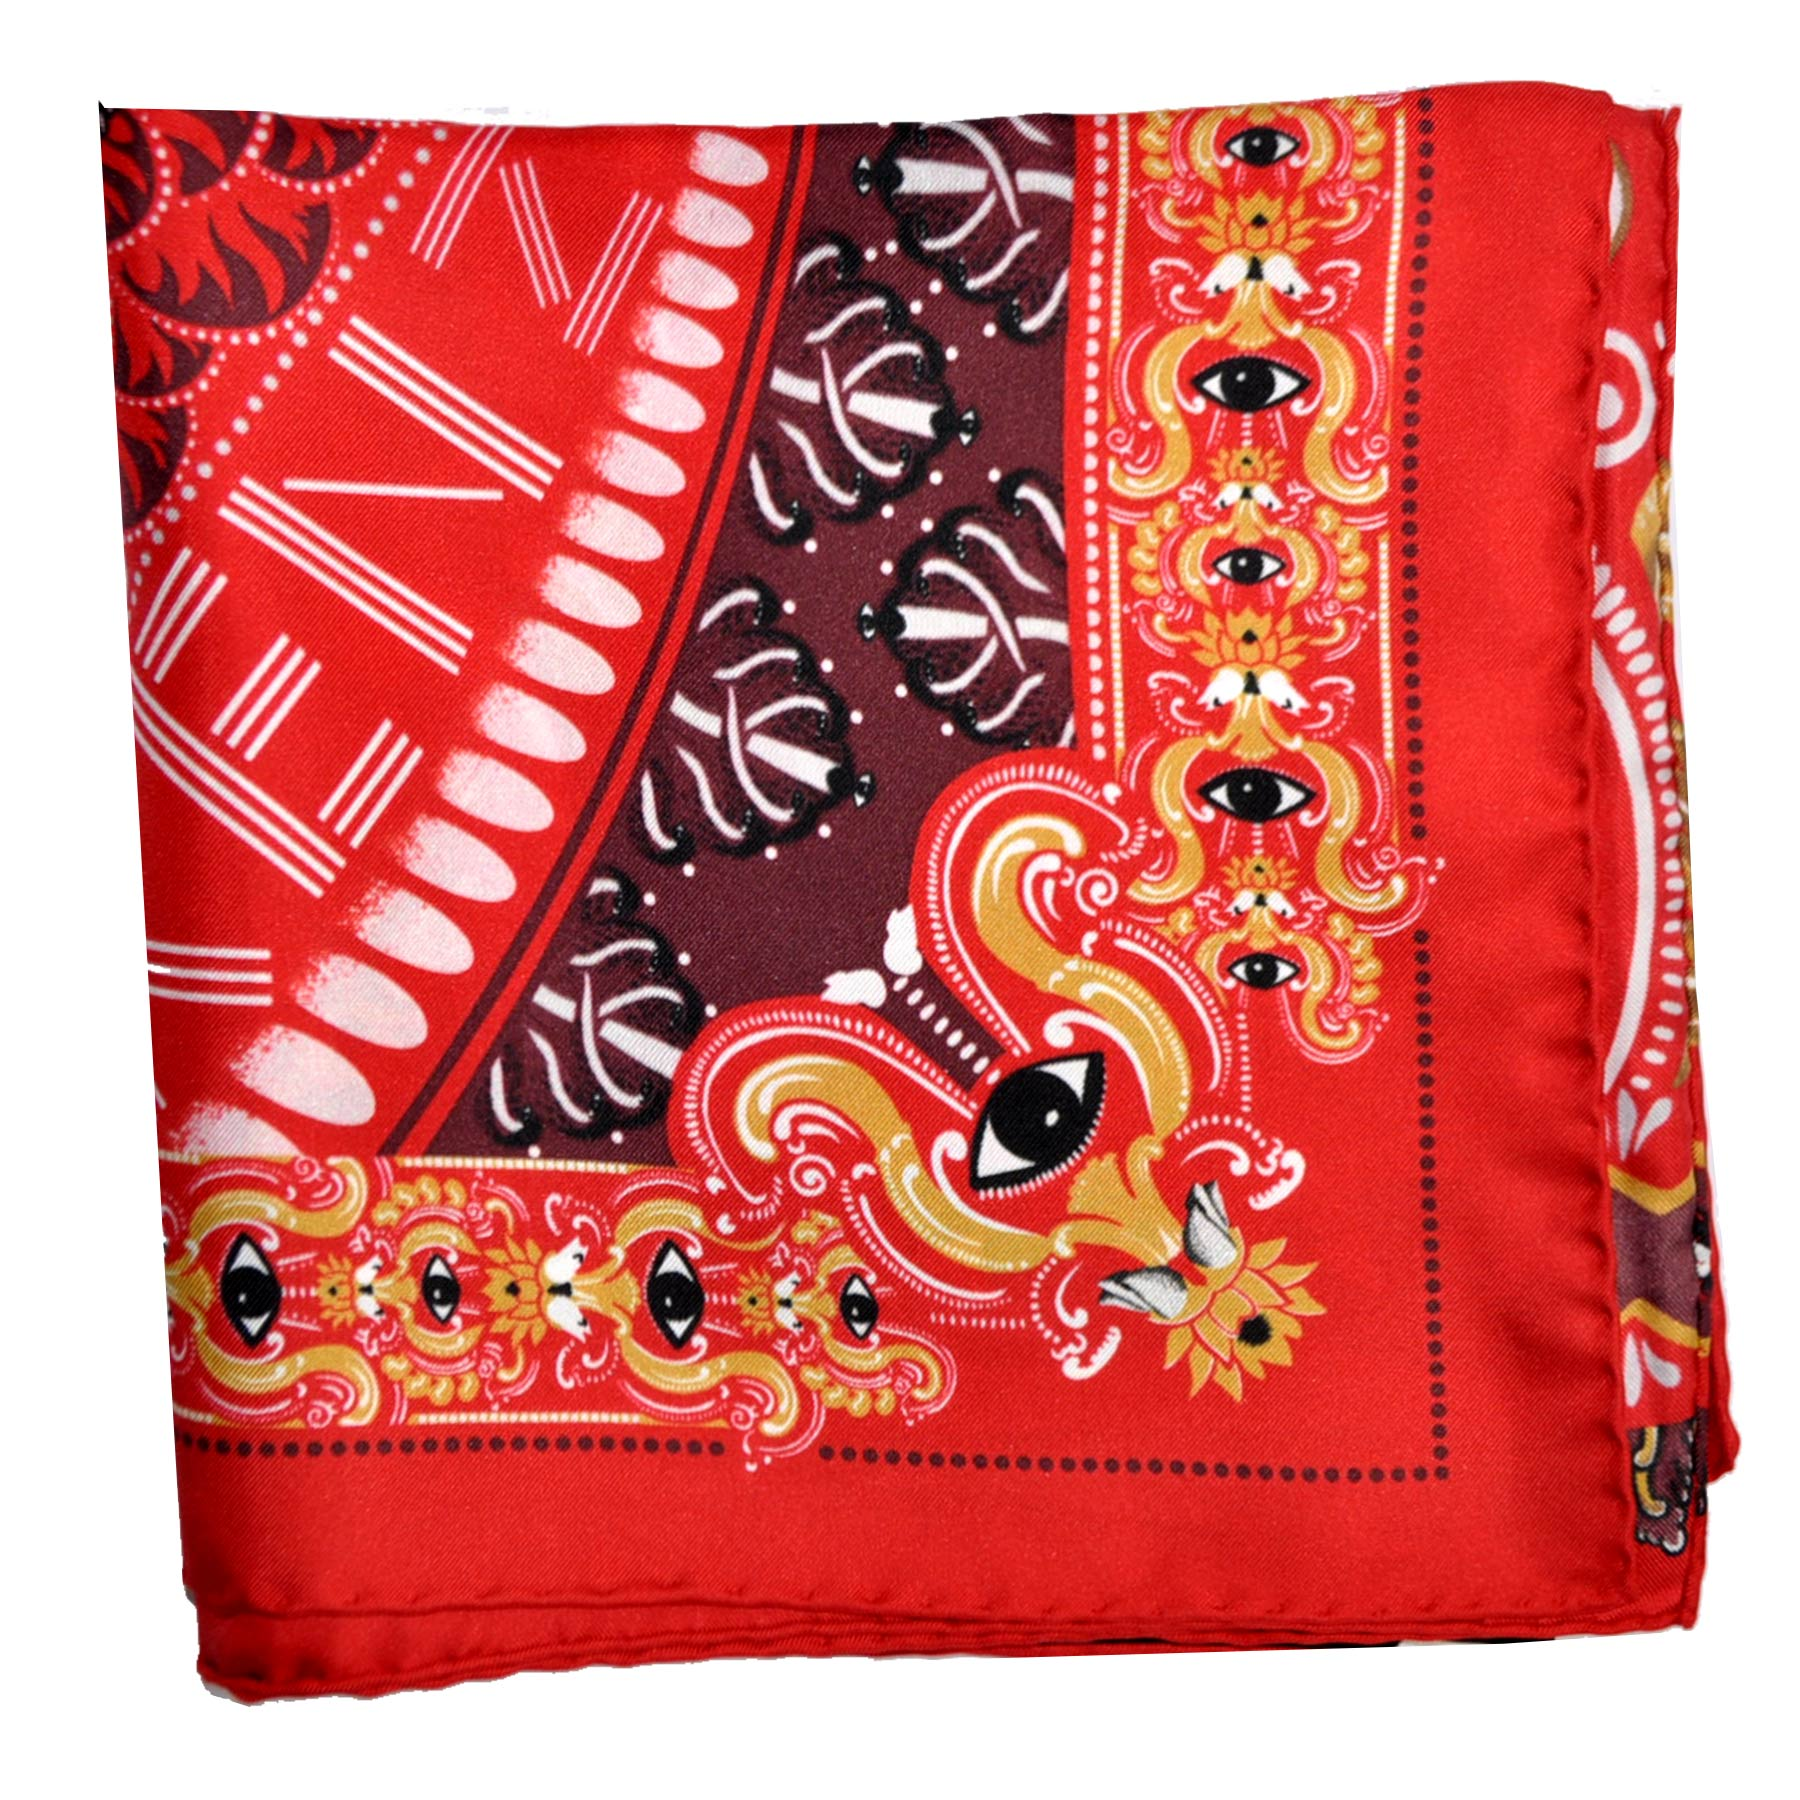 Kenzo Silk Scarf Red Signature Design